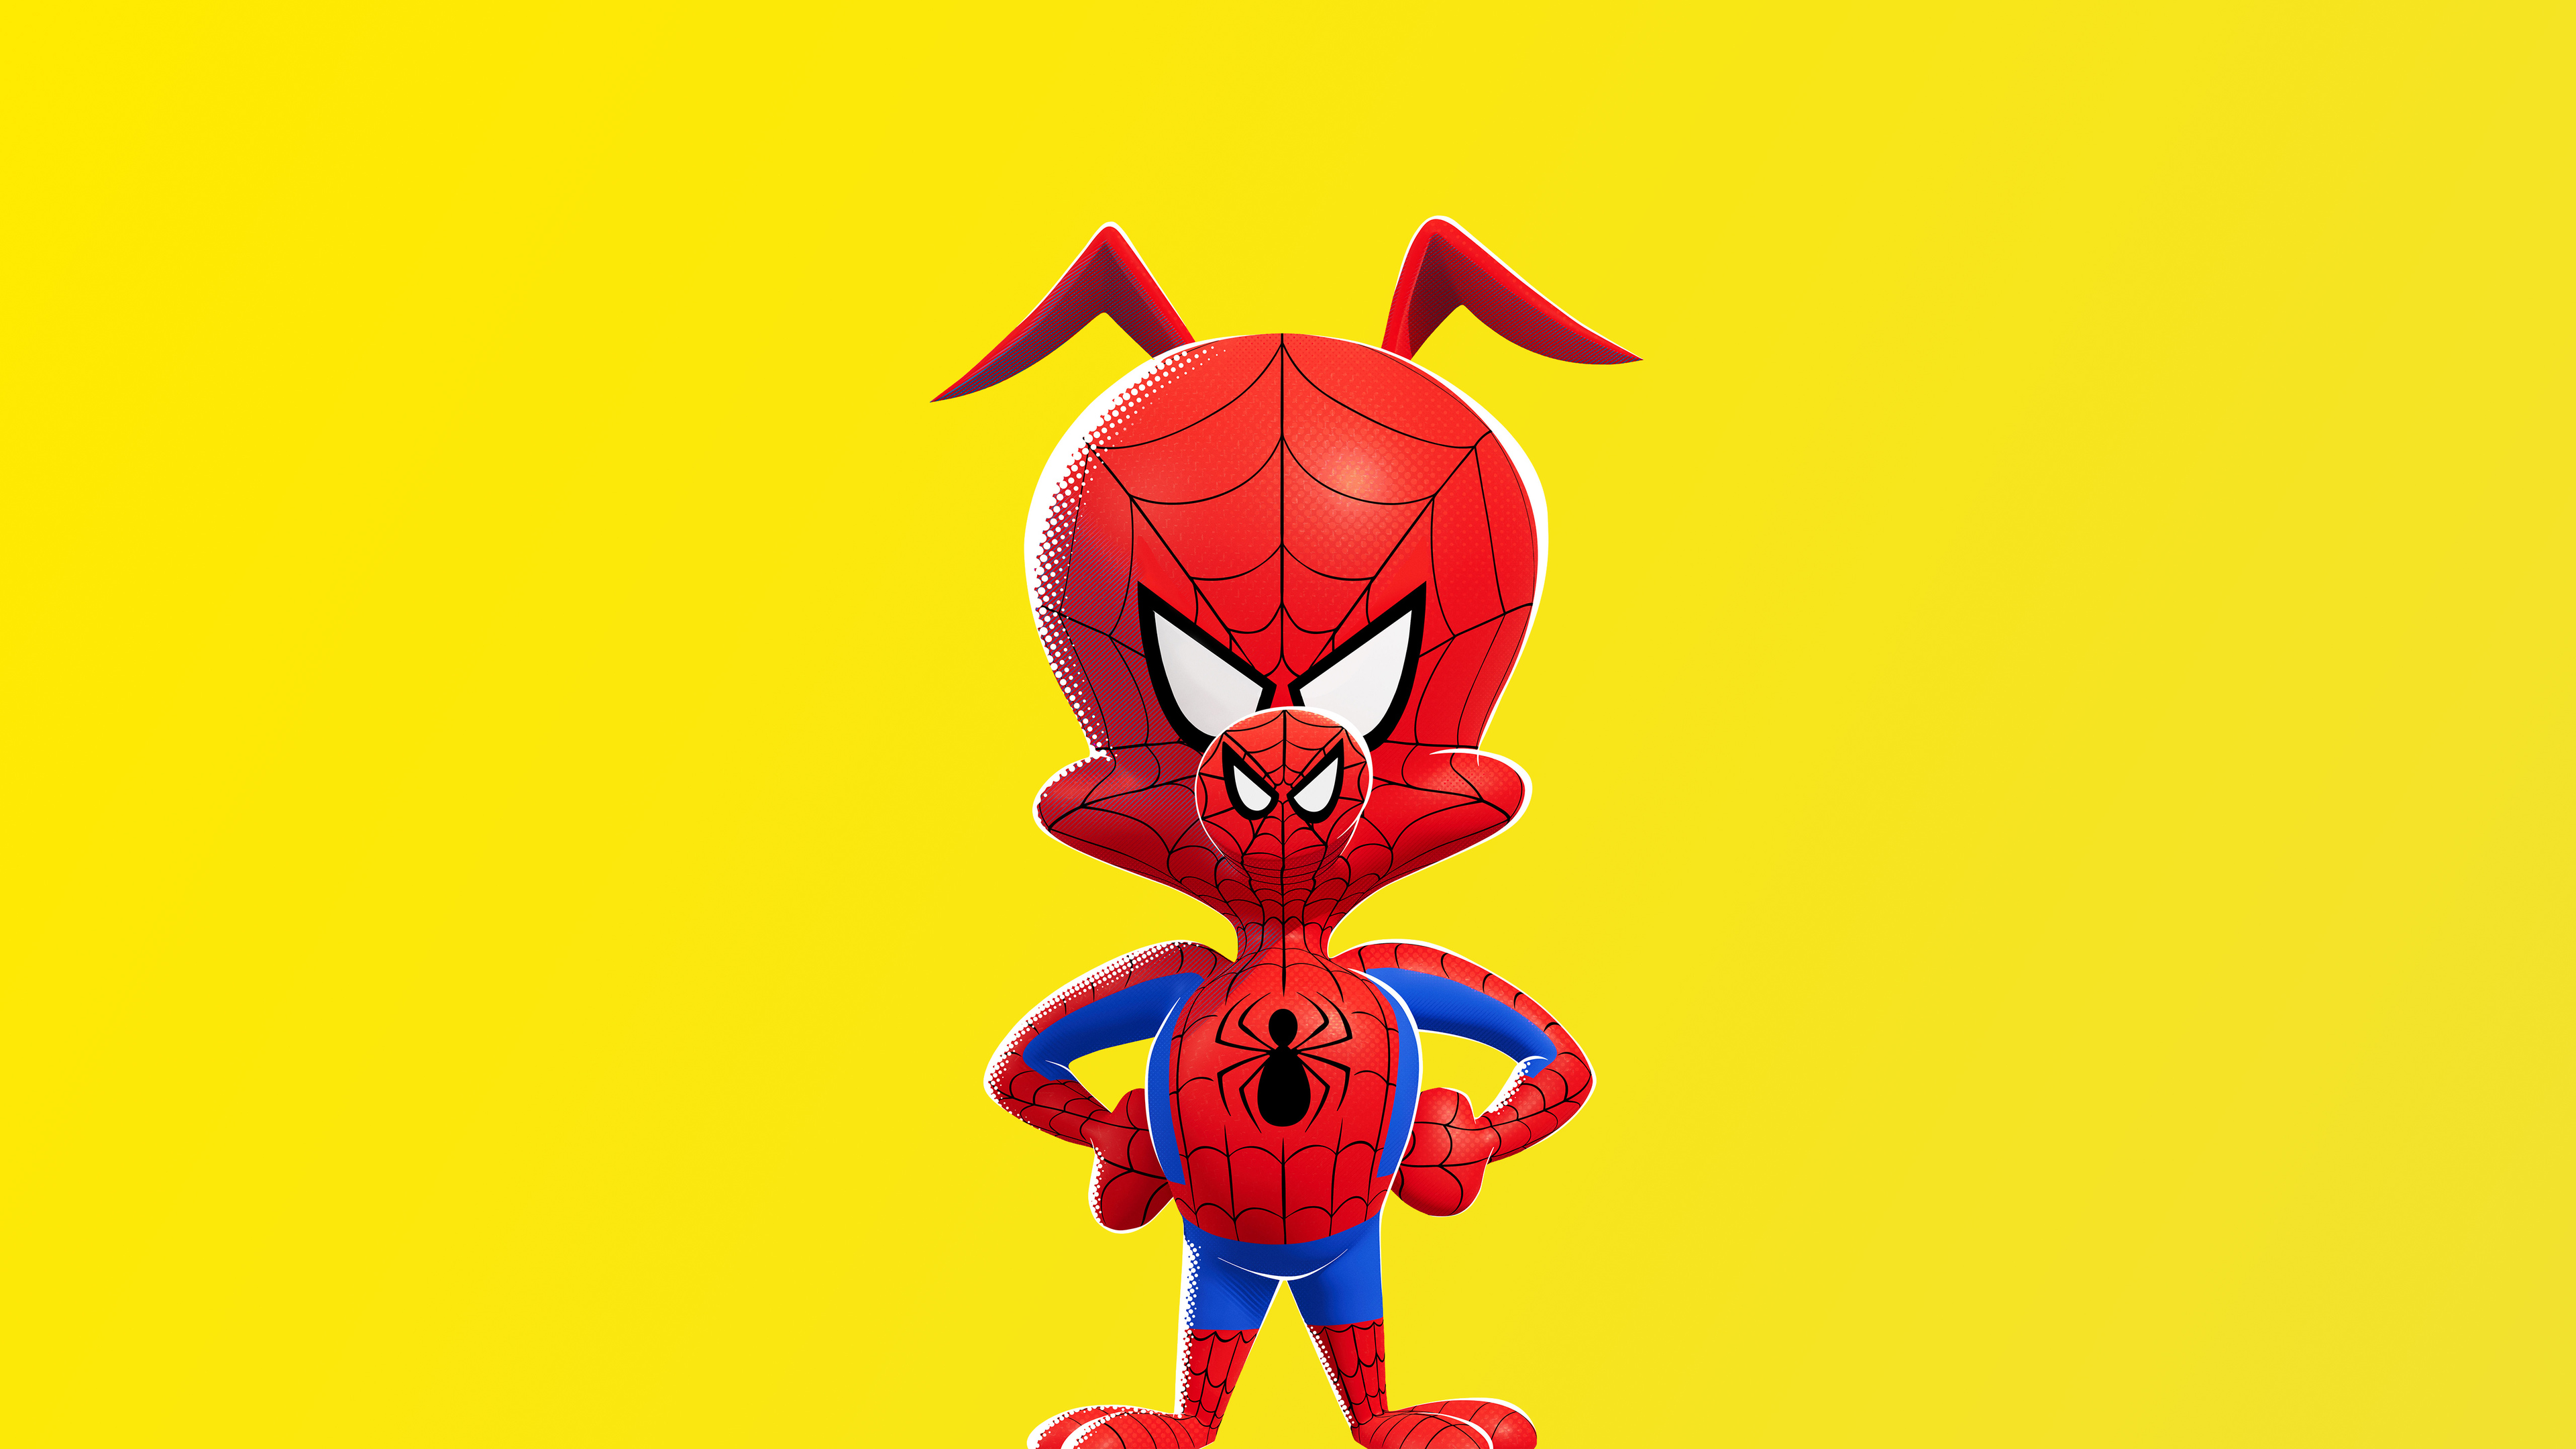 spider ham 4k 1543105191 - Spider Ham 4k - spiderman wallpapers, spiderman into the spider verse wallpapers, movies wallpapers, hd-wallpapers, animated movies wallpapers, 5k wallpapers, 4k-wallpapers, 2018-movies-wallpapers